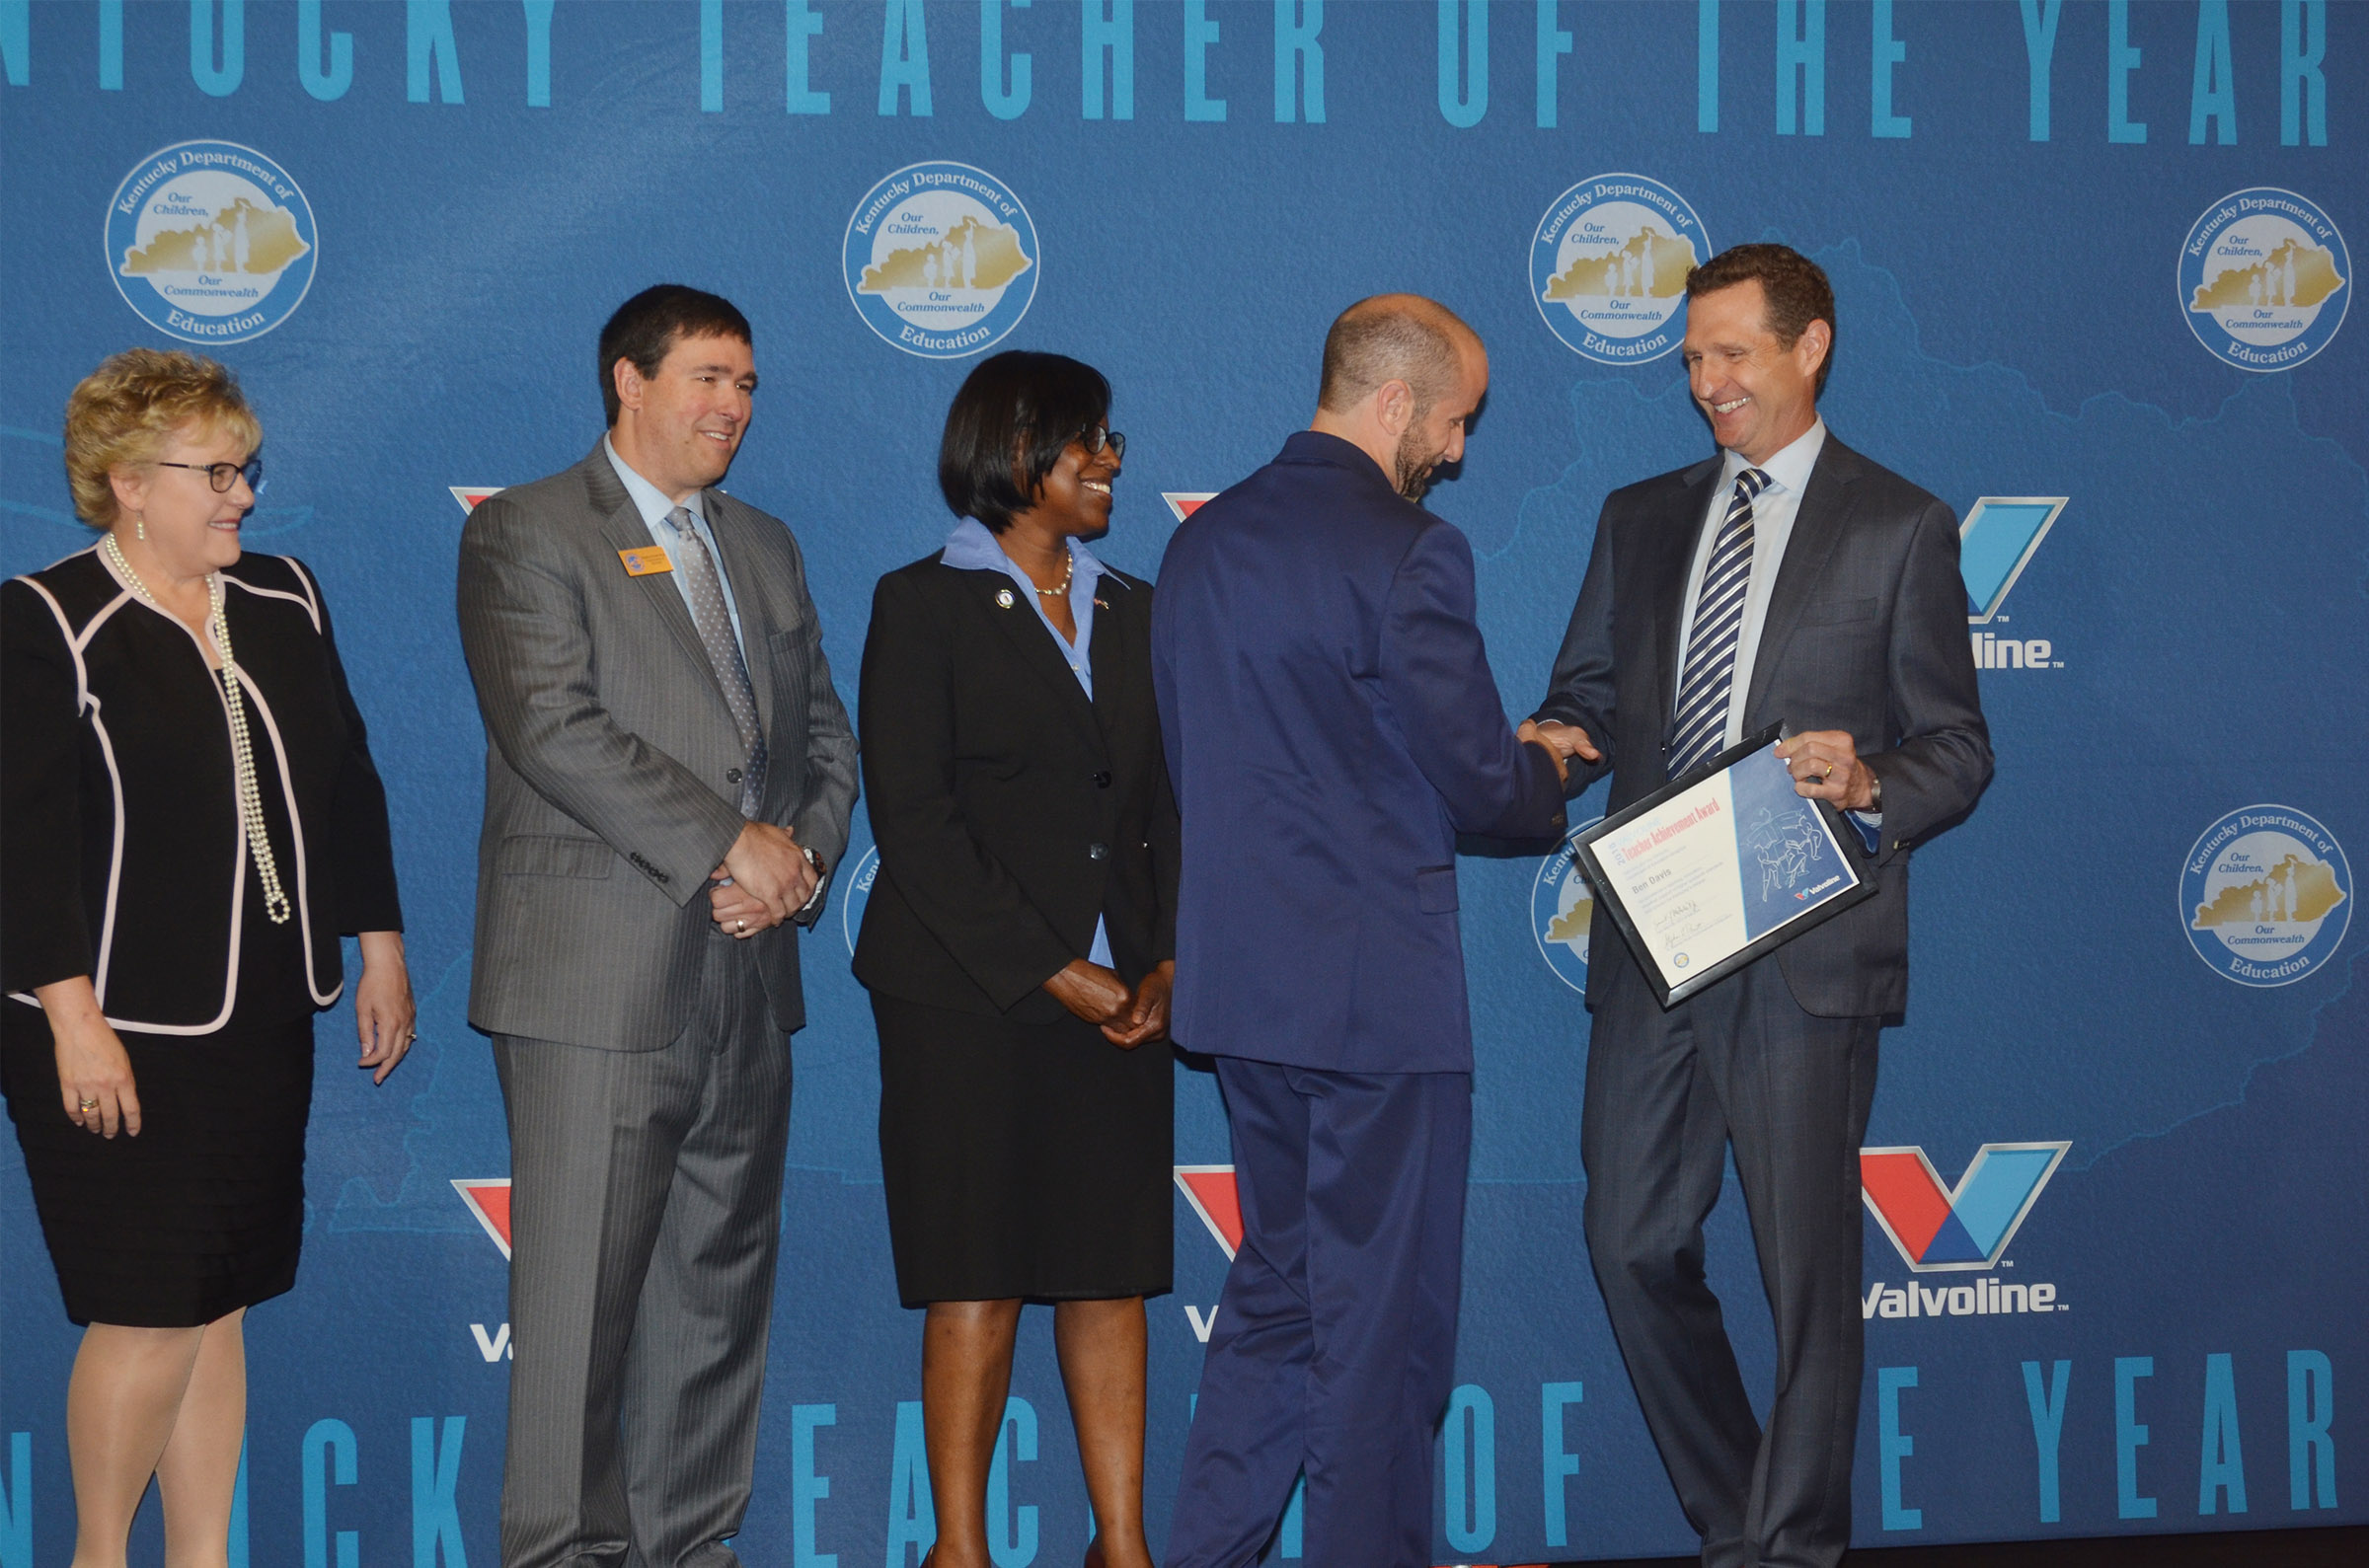 CHS teacher Ben Davis receives his Teacher Achievement Award from Sam Mitchell, chief executive officer of Valvoline. Also pictured are, from left, Mardi Montgomery, director for policy and legislation at the Kentucky Education and Workforce Development Cabinet; Commissioner of Education Dr. Stephen Pruitt; and Kentucky Lt. Gov. Jenean Hampton.